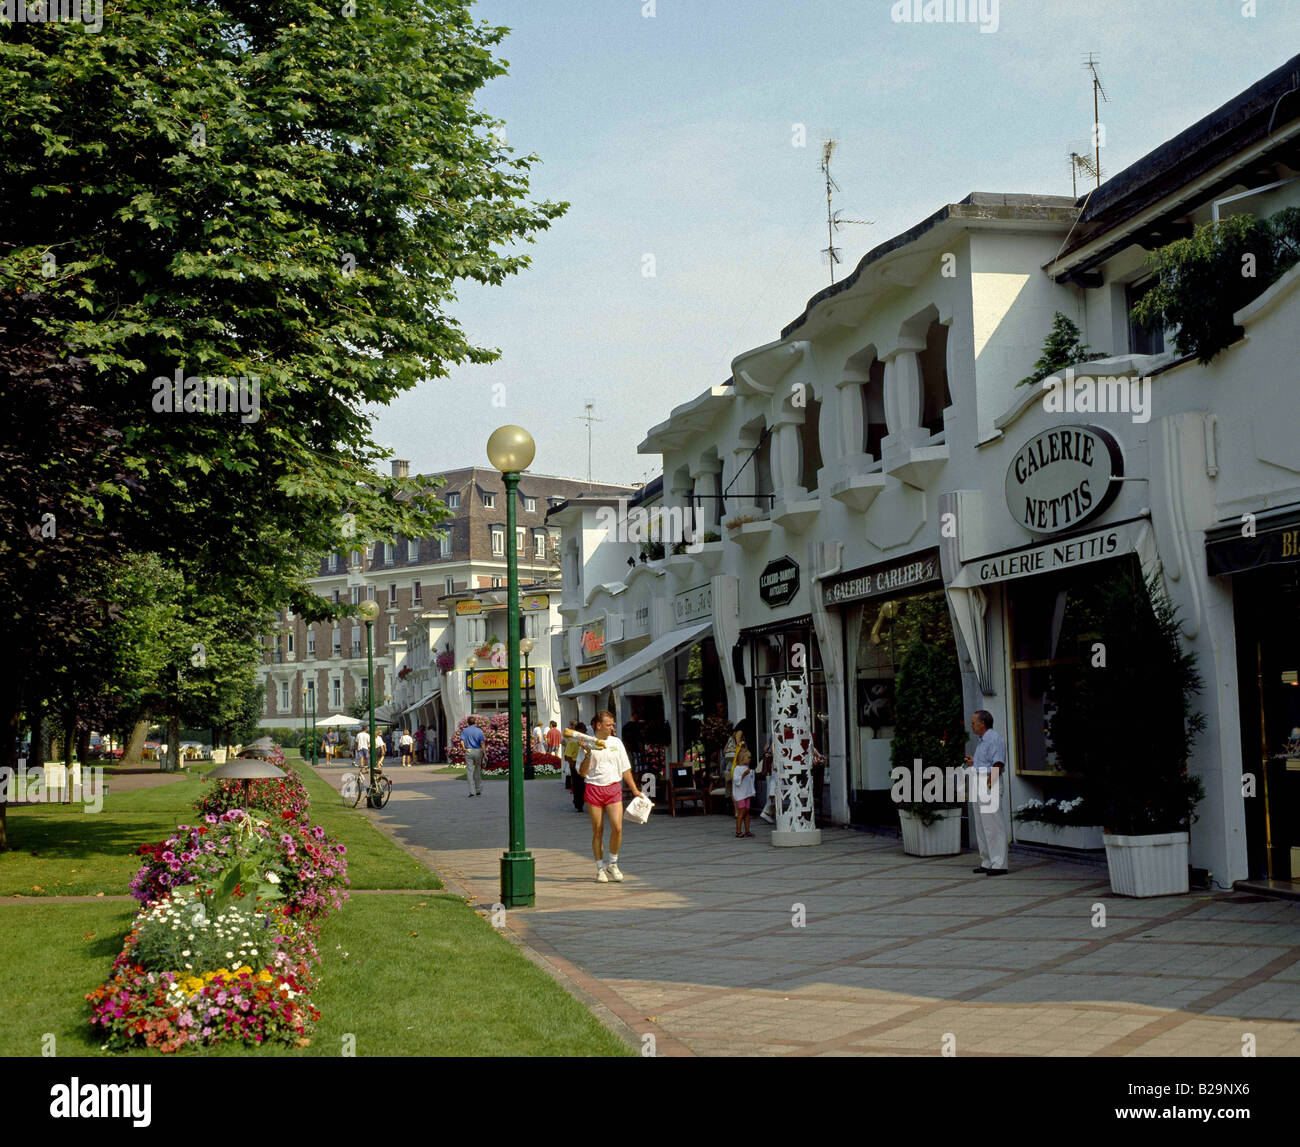 Le Touquet Picardy France Ref GHBF 266 Date 04 10 2007 COMPULSORY CREDIT World Pictures Photoshot Stock Photo